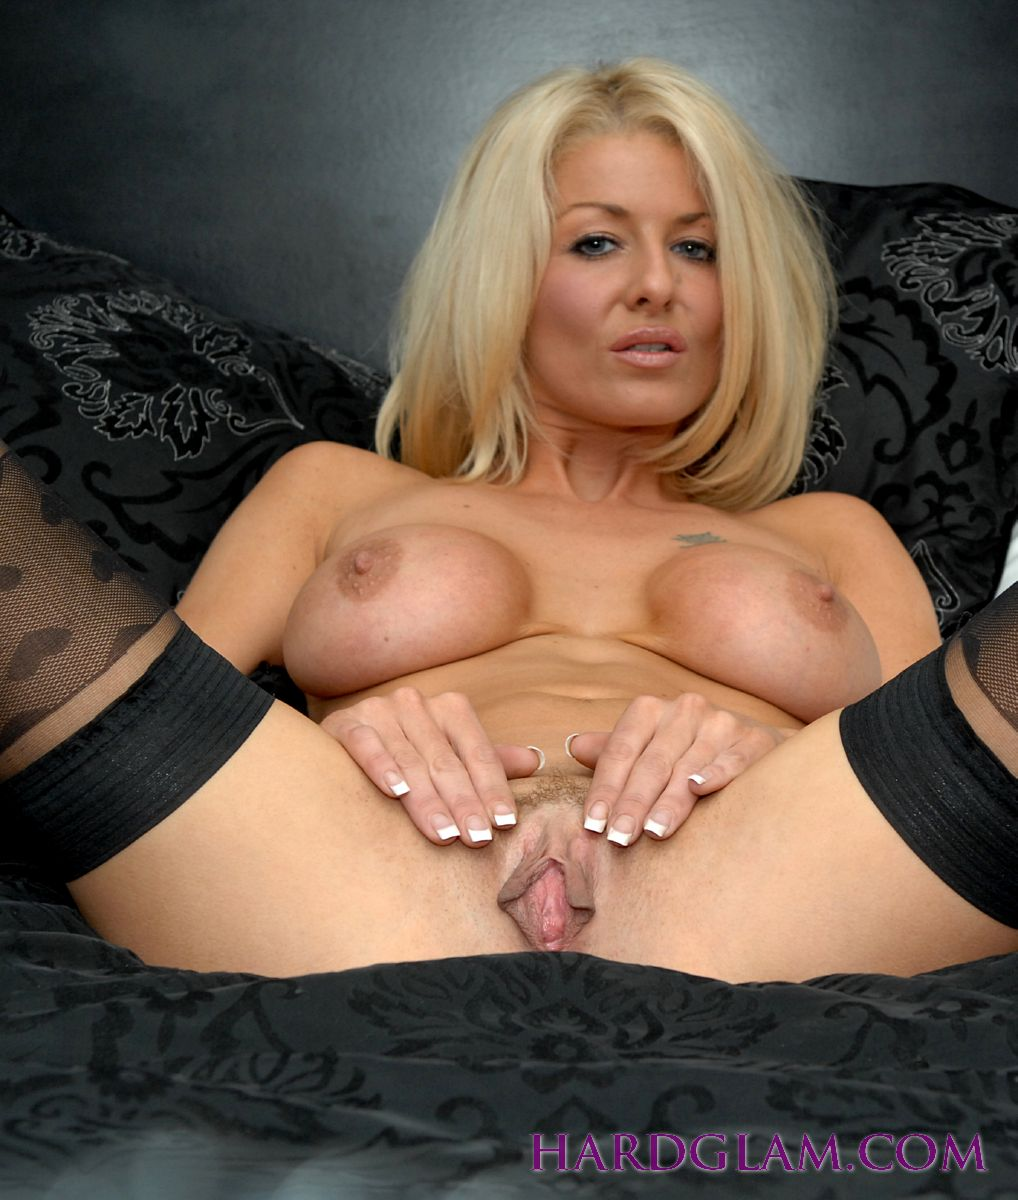 Natural Busty Blonde Milf